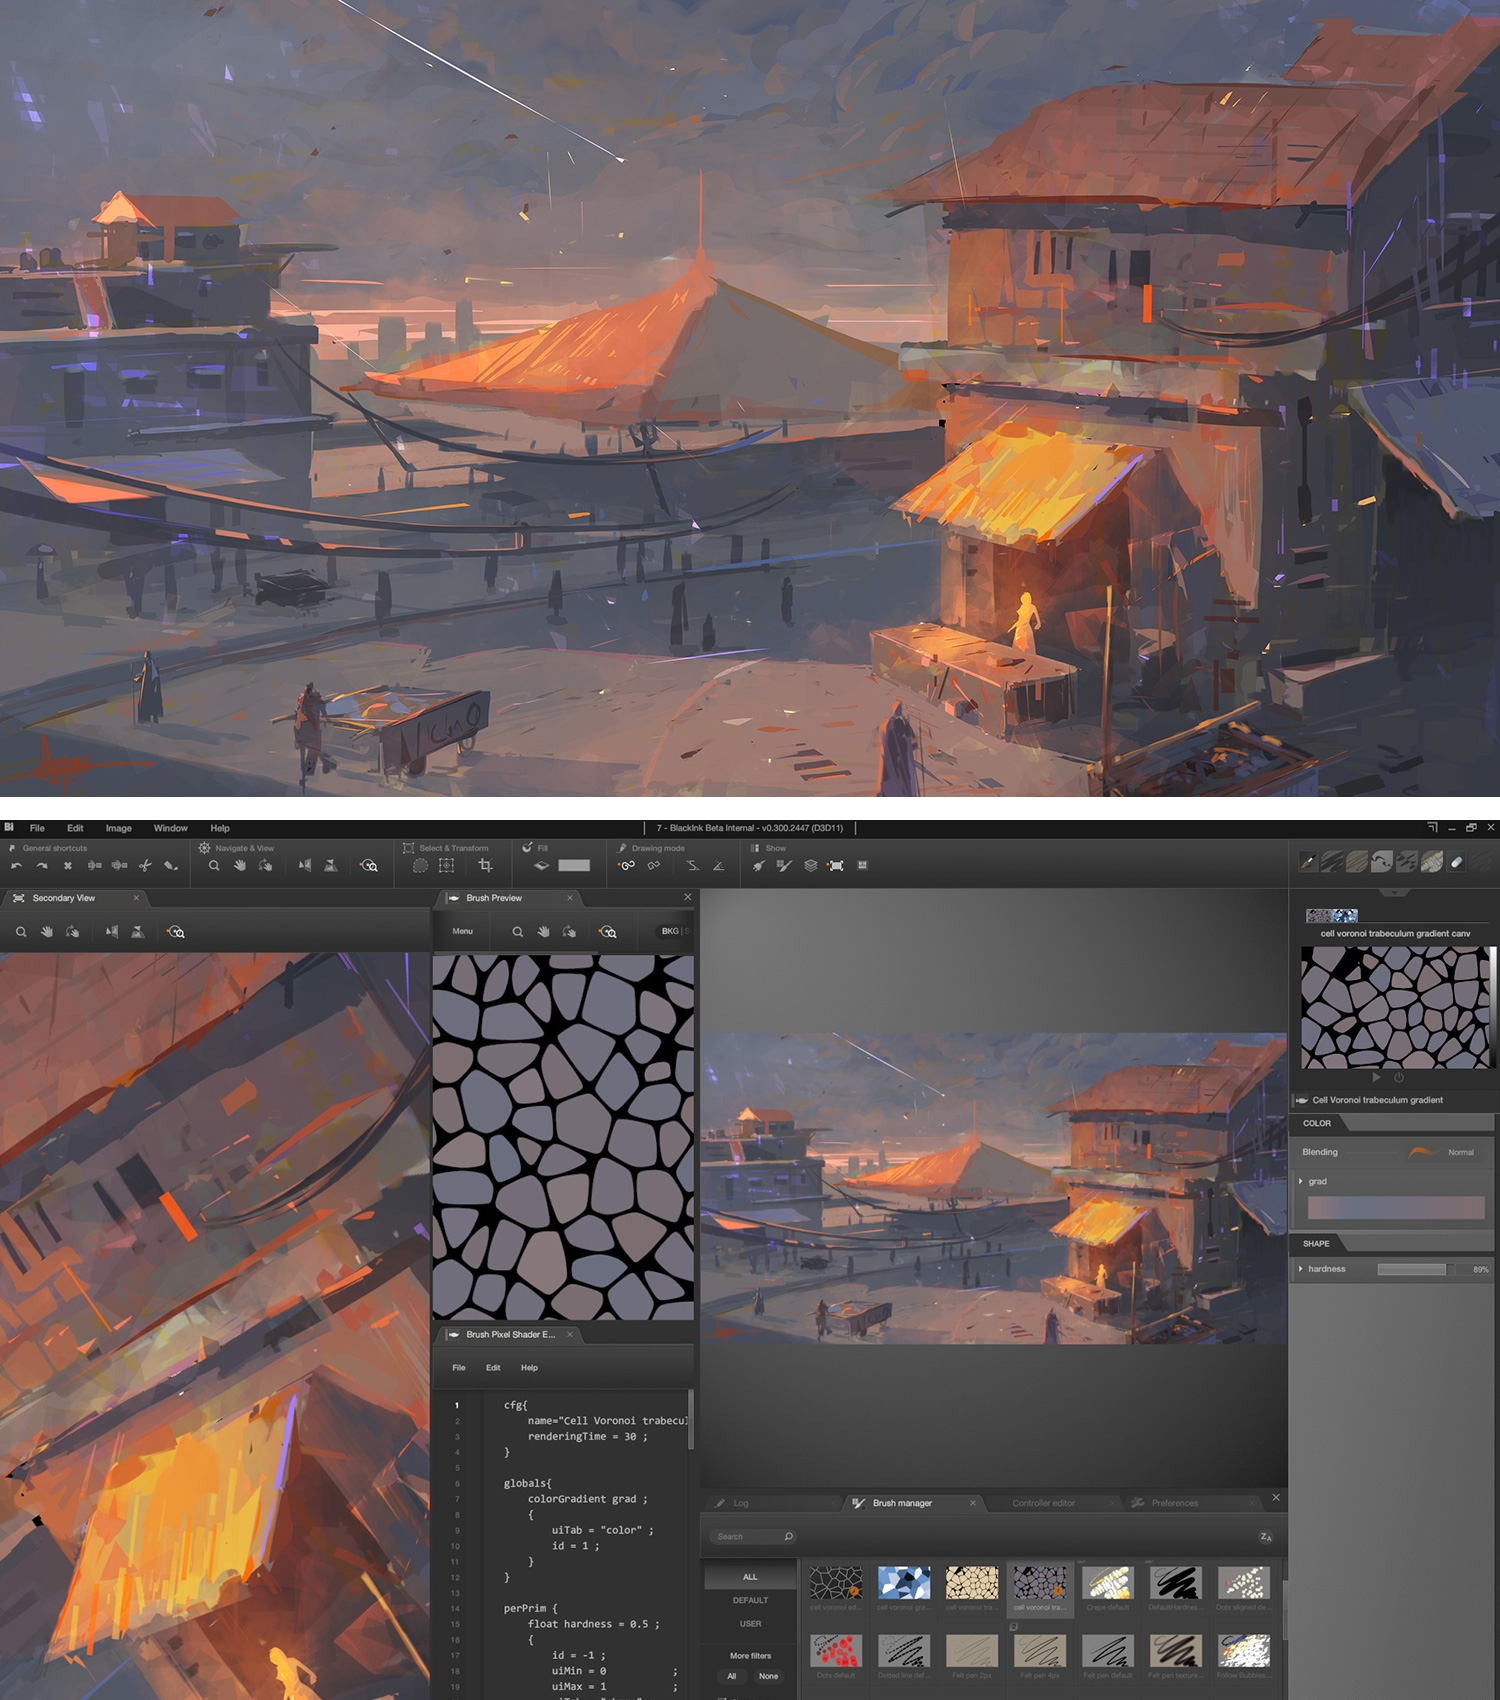 Discover the 10 best digital painting apps for Mac and PC - Digital Arts